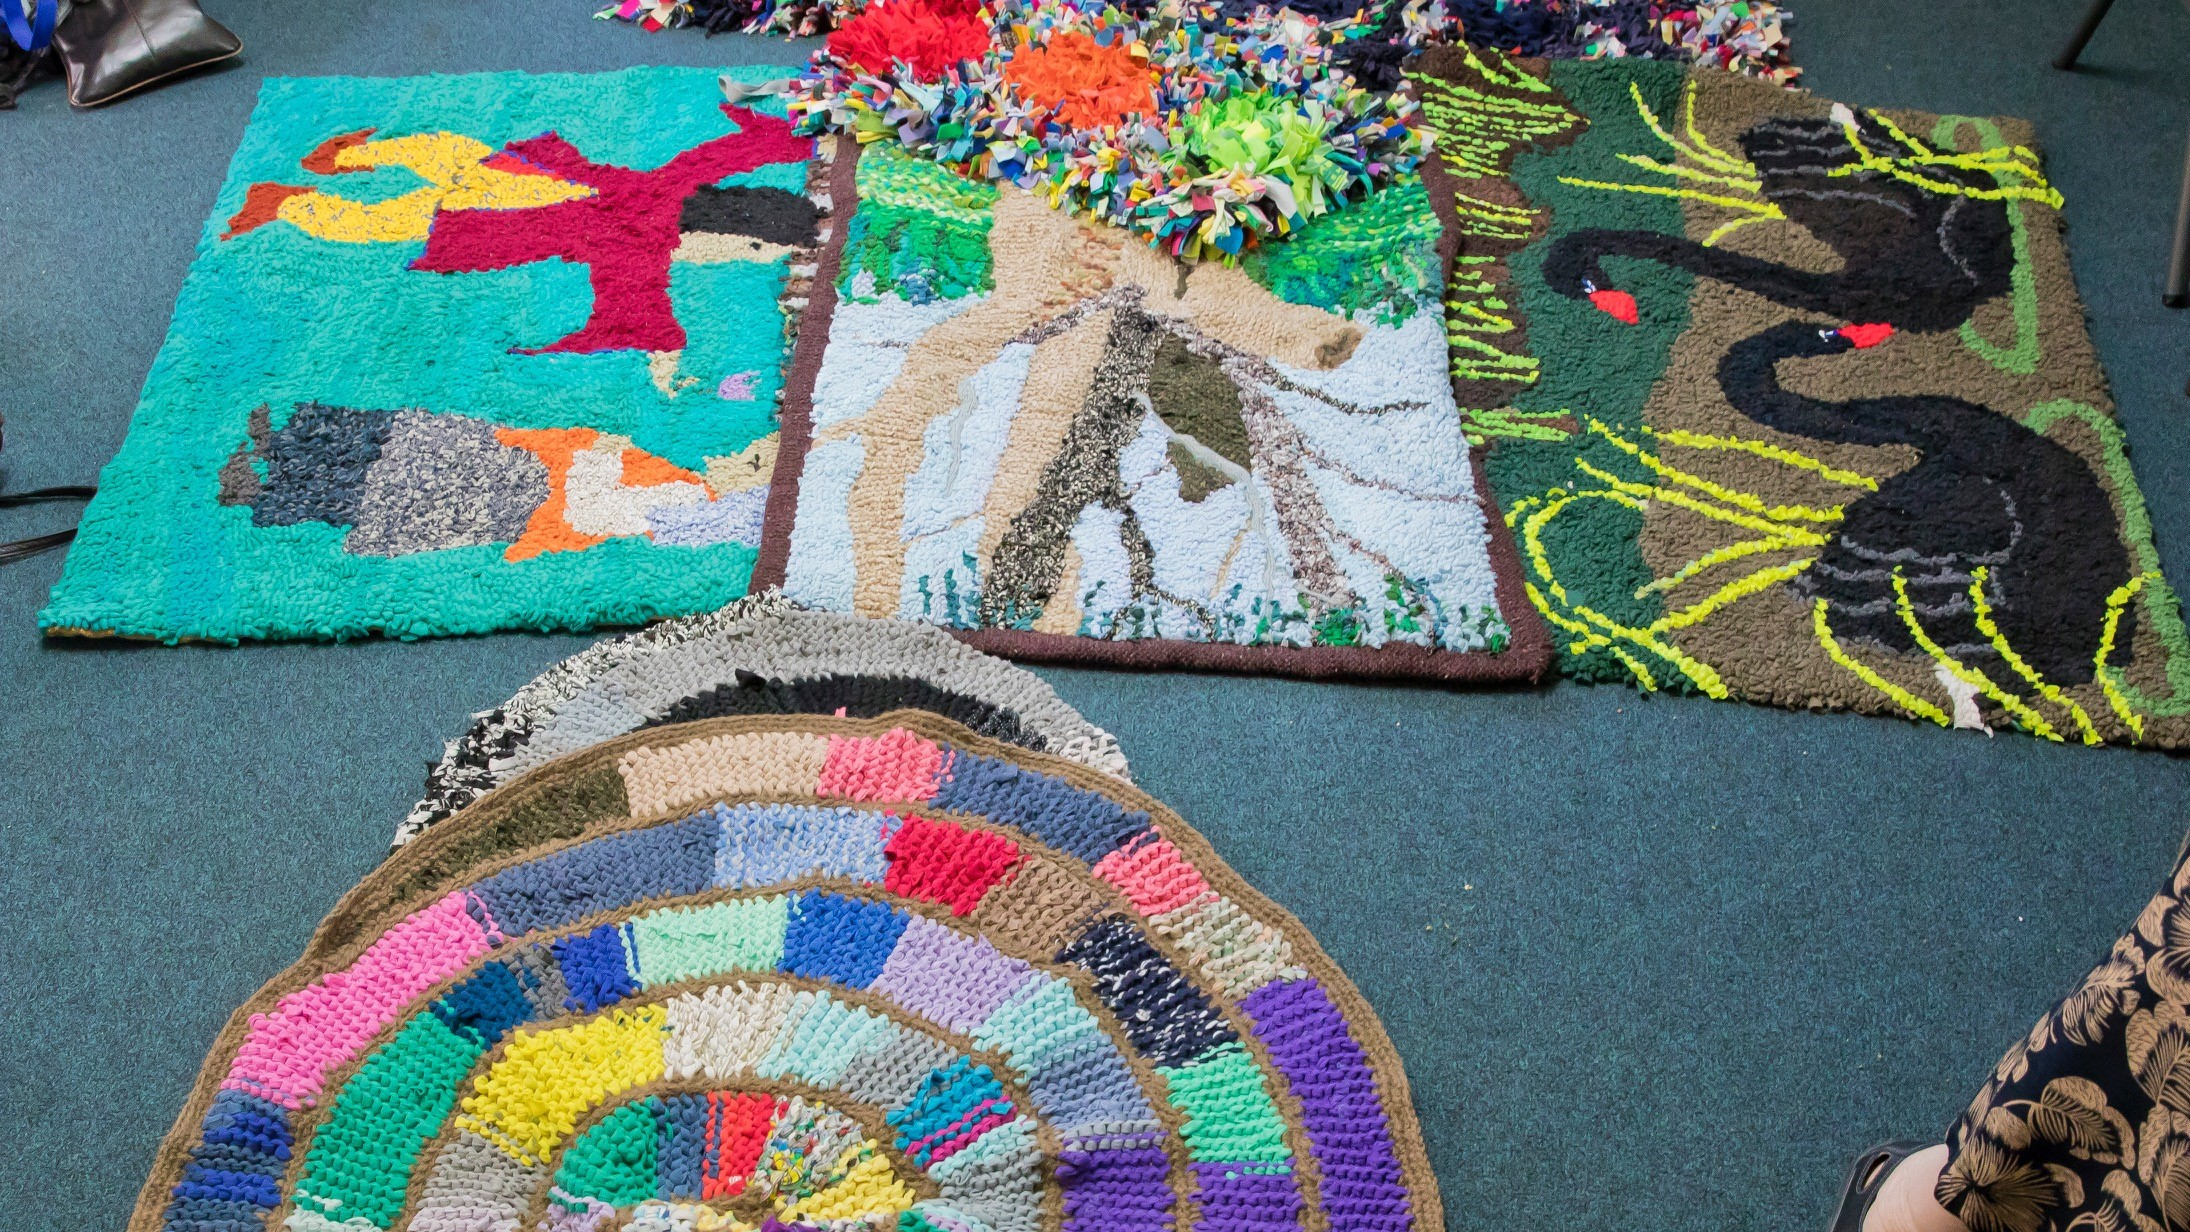 Seniors Week Rag Rug Workshop at Mitchelton